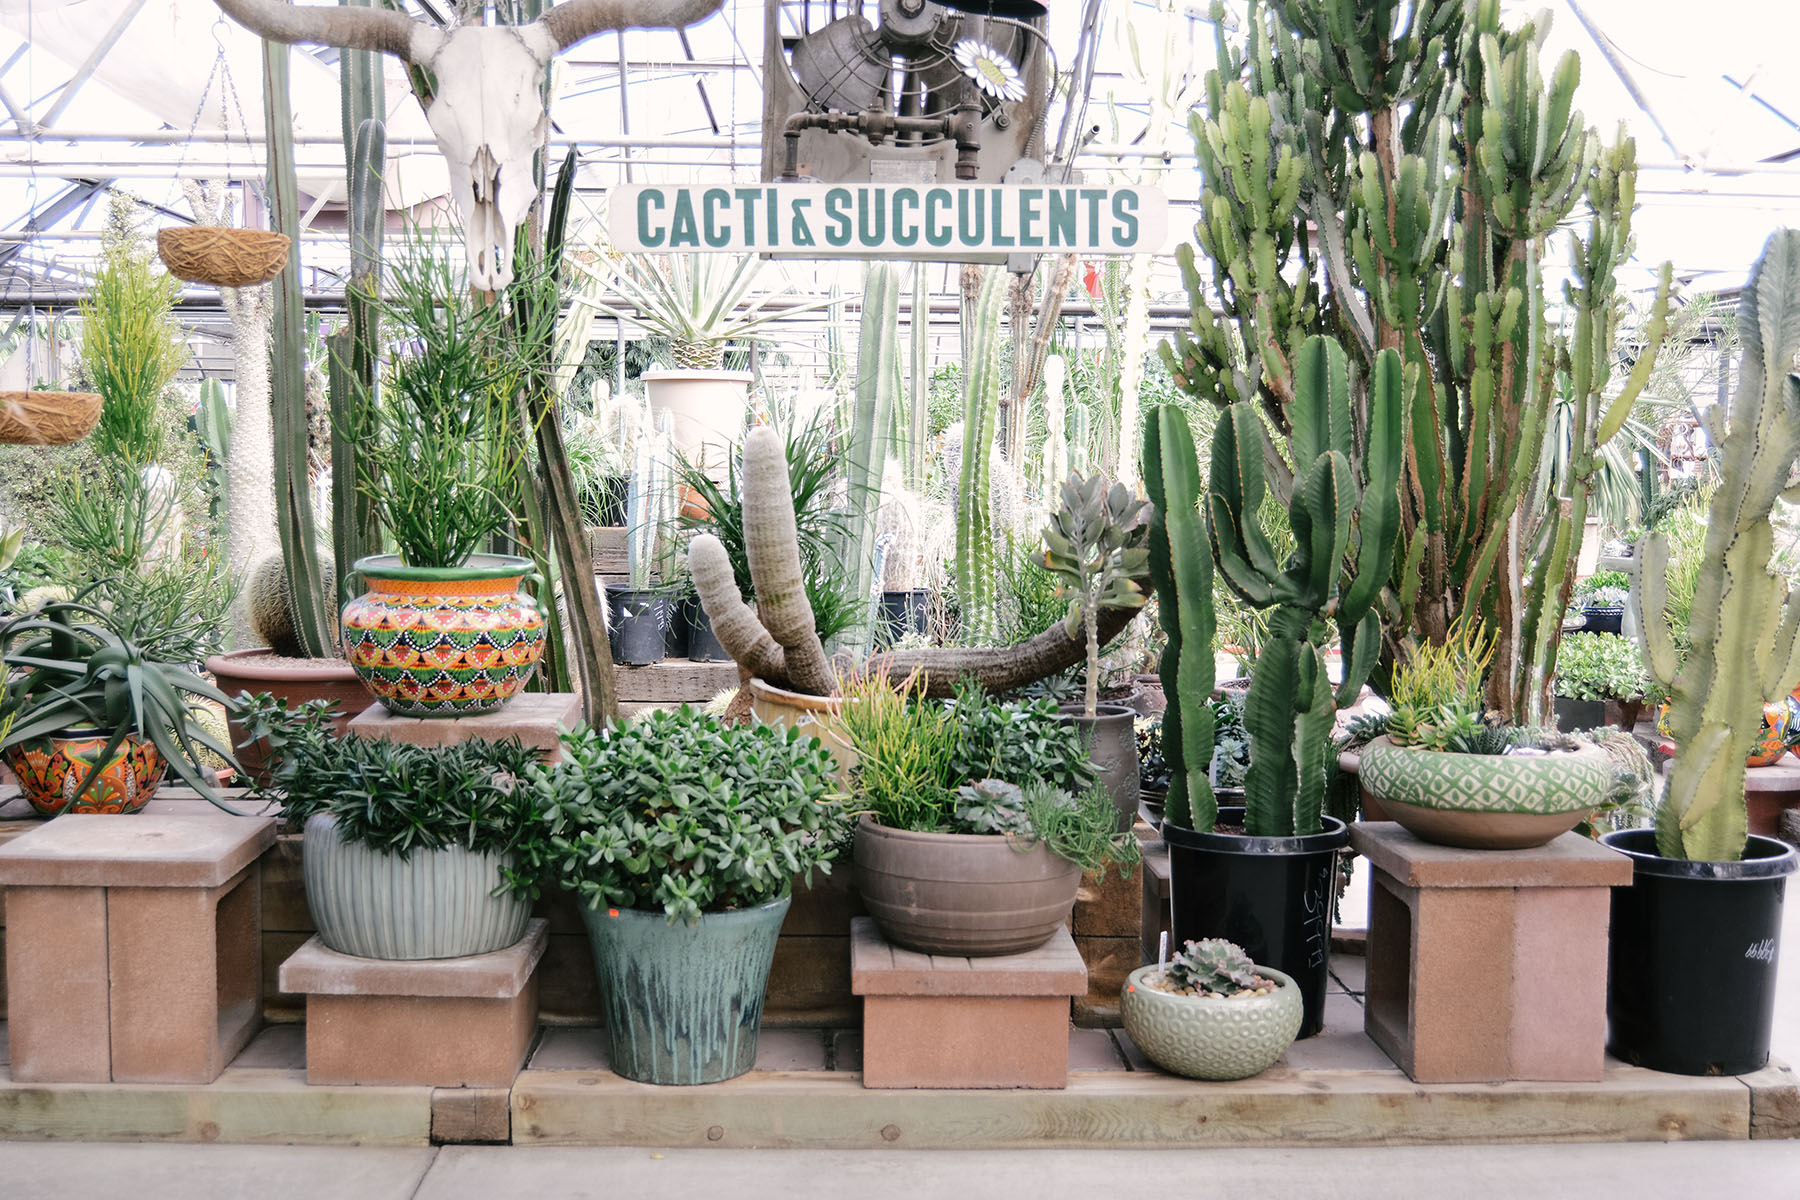 cacti-and-succulents-sm.jpg